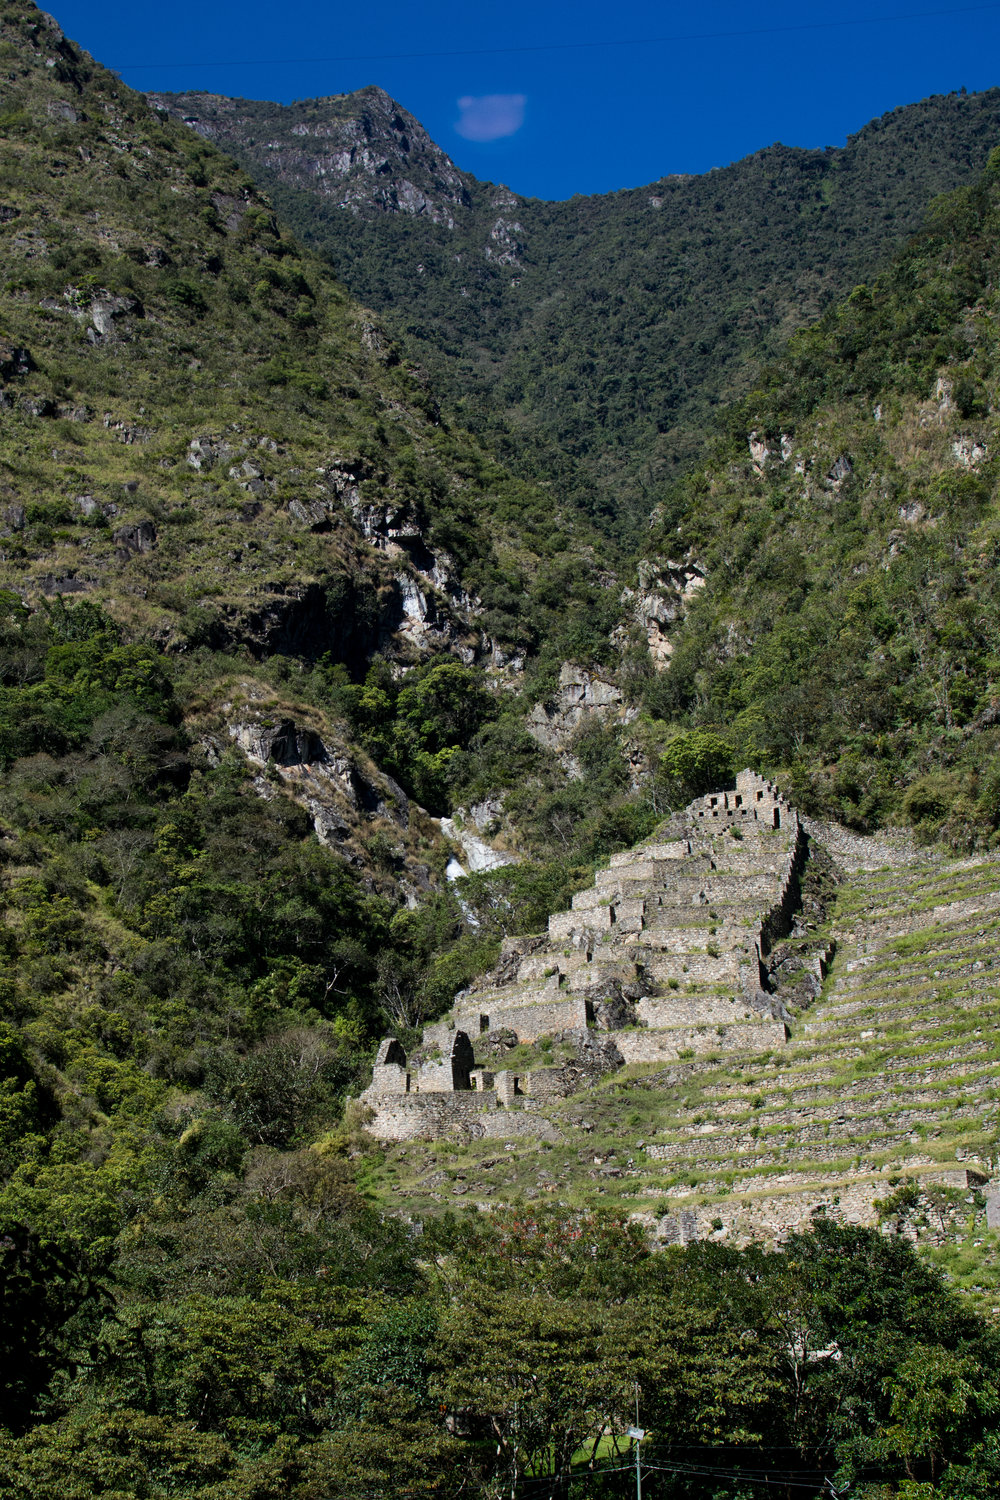 View of Inca Ruins from Train to Machu Picchu